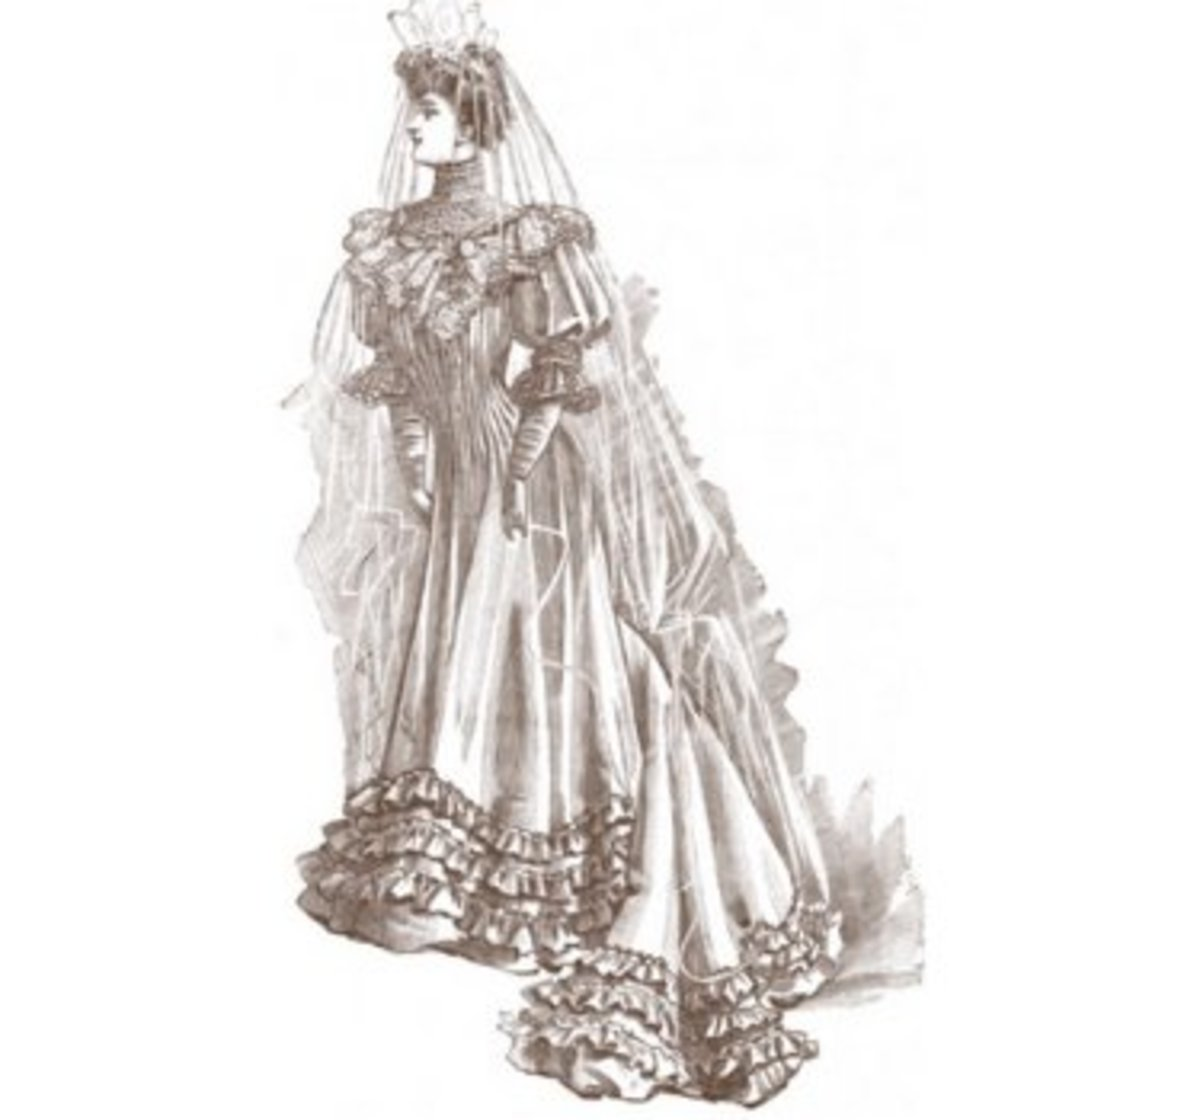 A bride in white may represent innocence and purity yet may also represent false appearances.